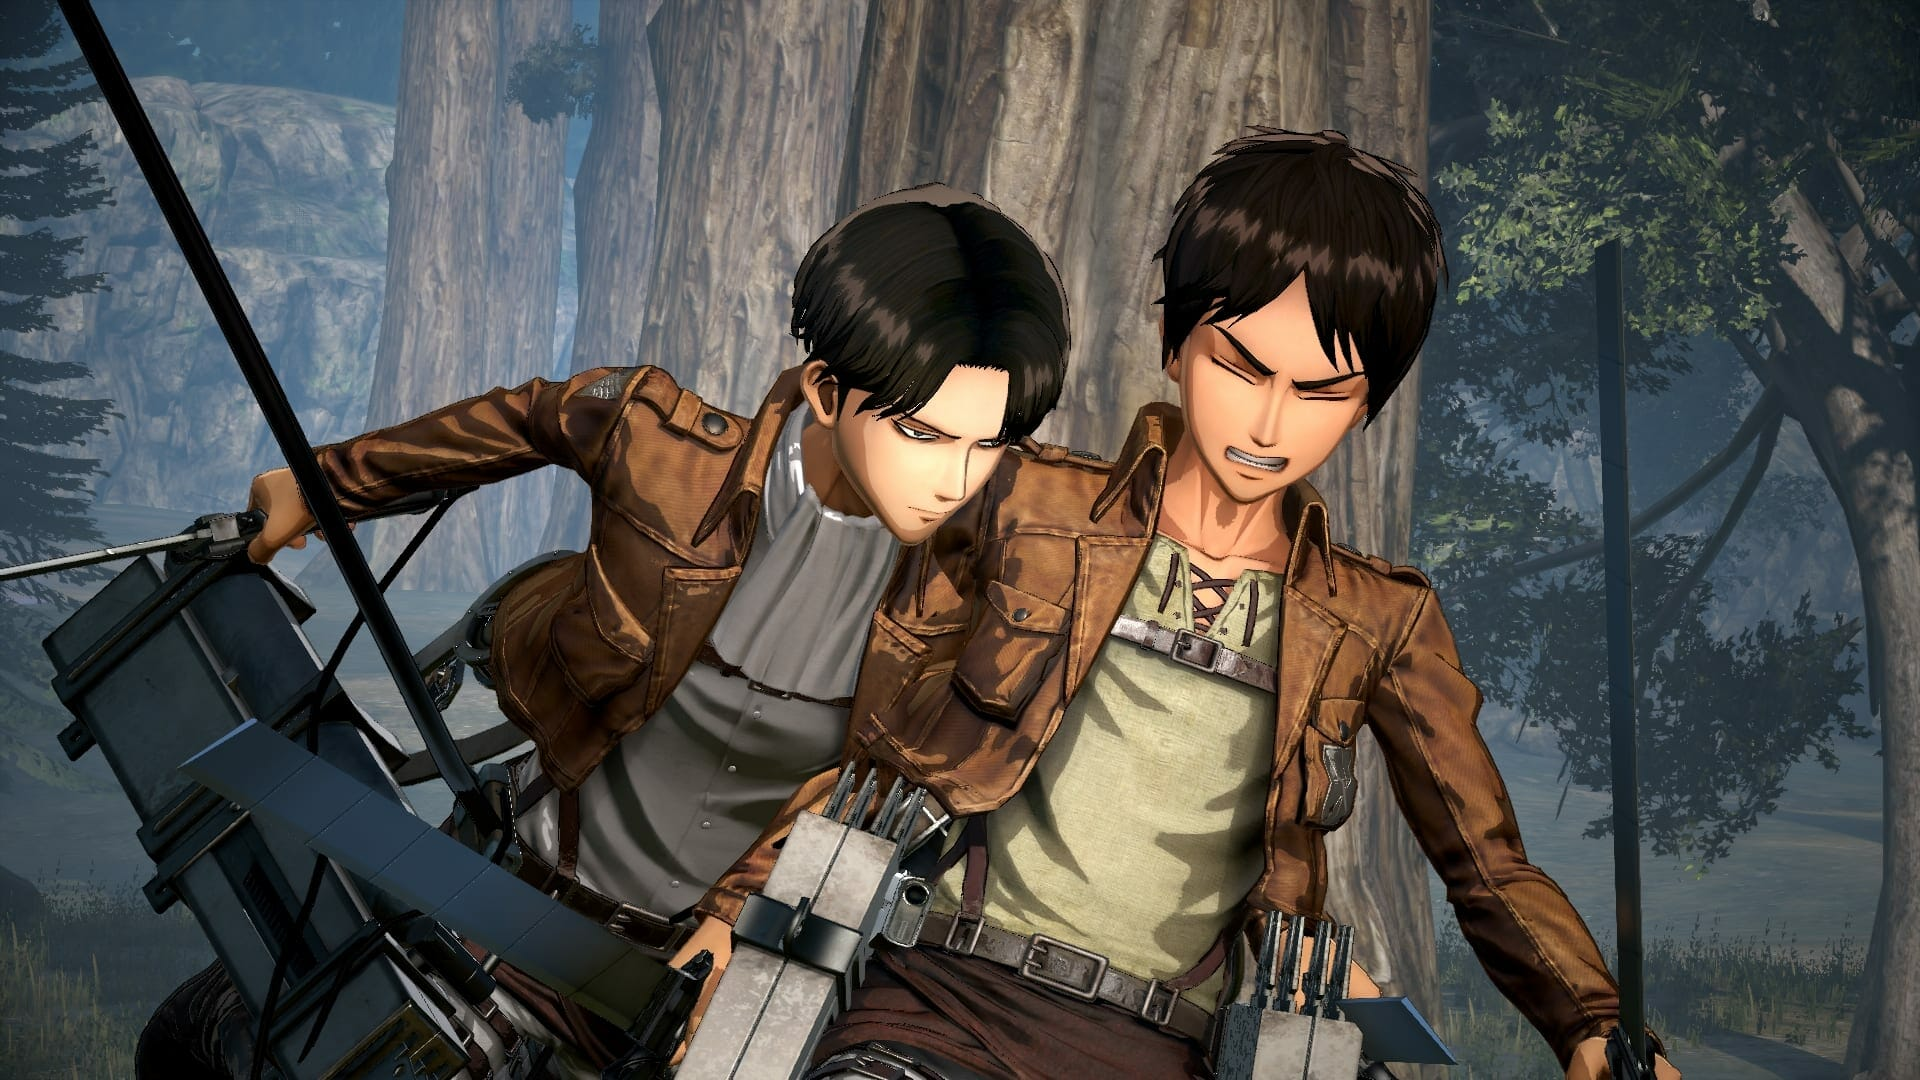 attack on titan 2 system requirements screenshots and